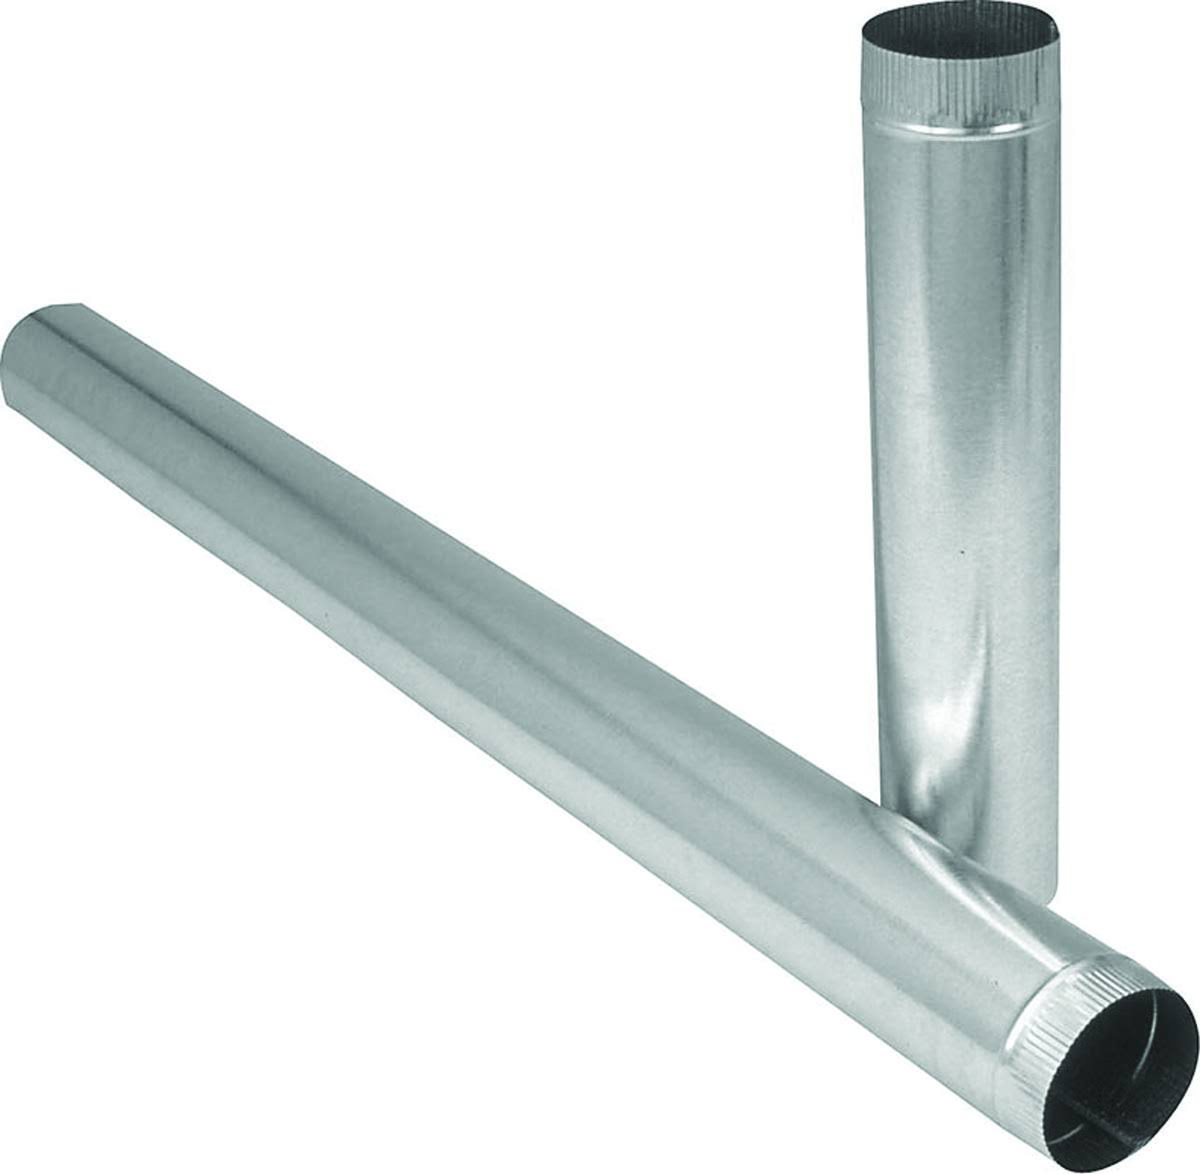 "Imperial Manufacturing Furnace Pipe - 4"" Dia x 60"", Galvanized, 30 Gauge"